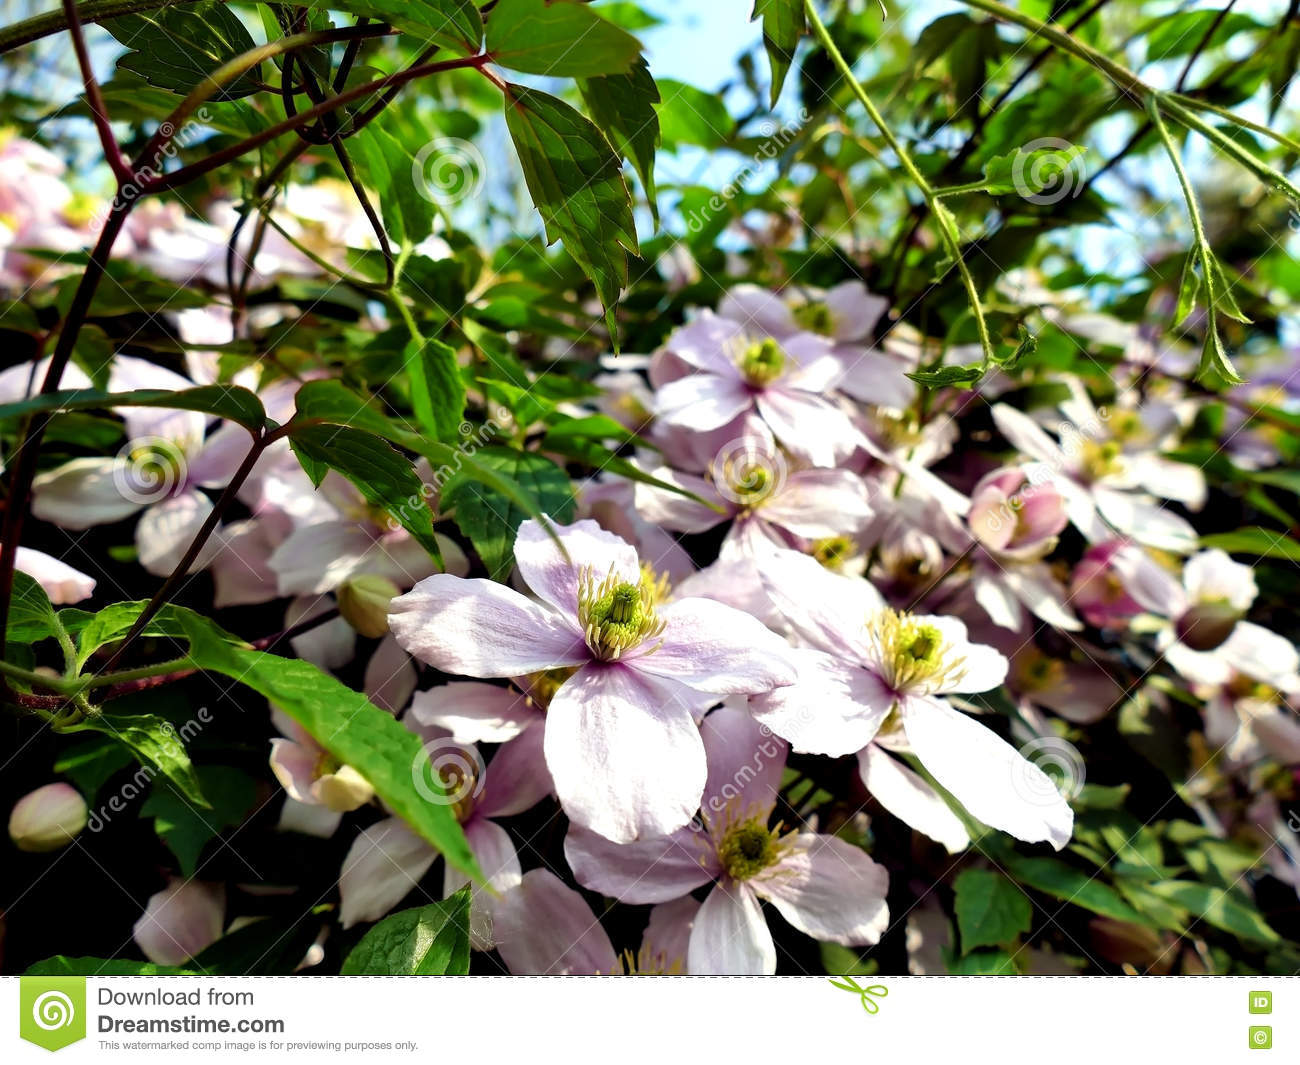 Clematis Montana Climbing Plant With Many Pink Flowers Stock Image